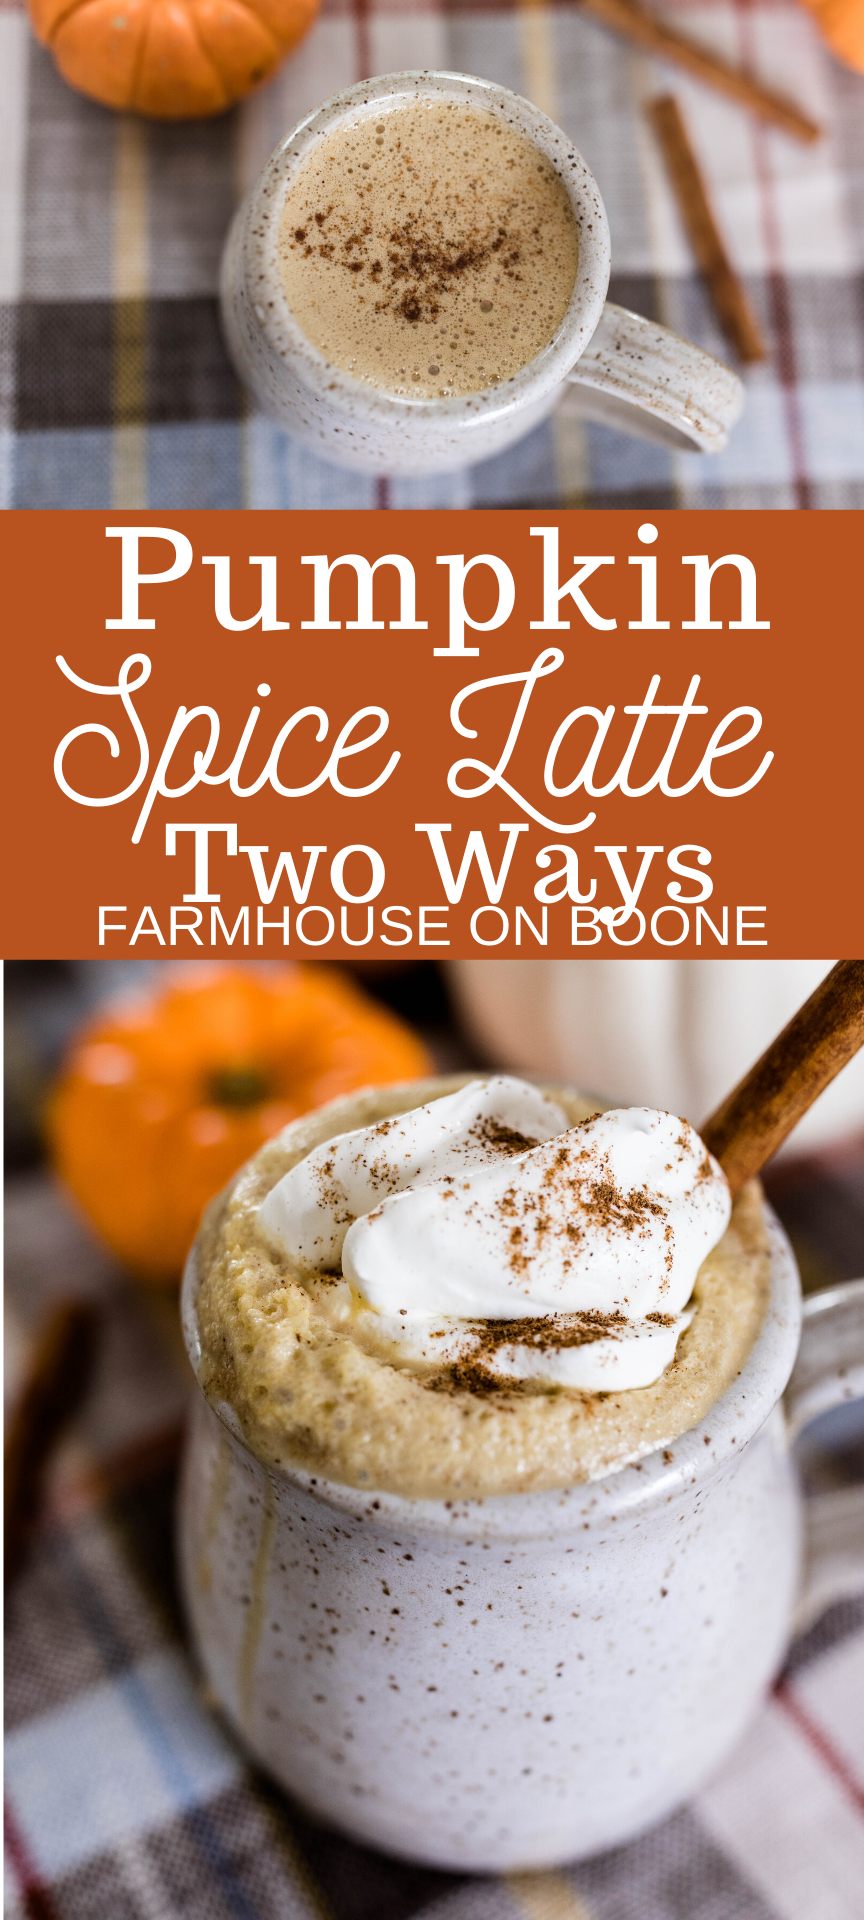 Homemade Pumpkin Spice Latte Recipe Homemade pumpkin